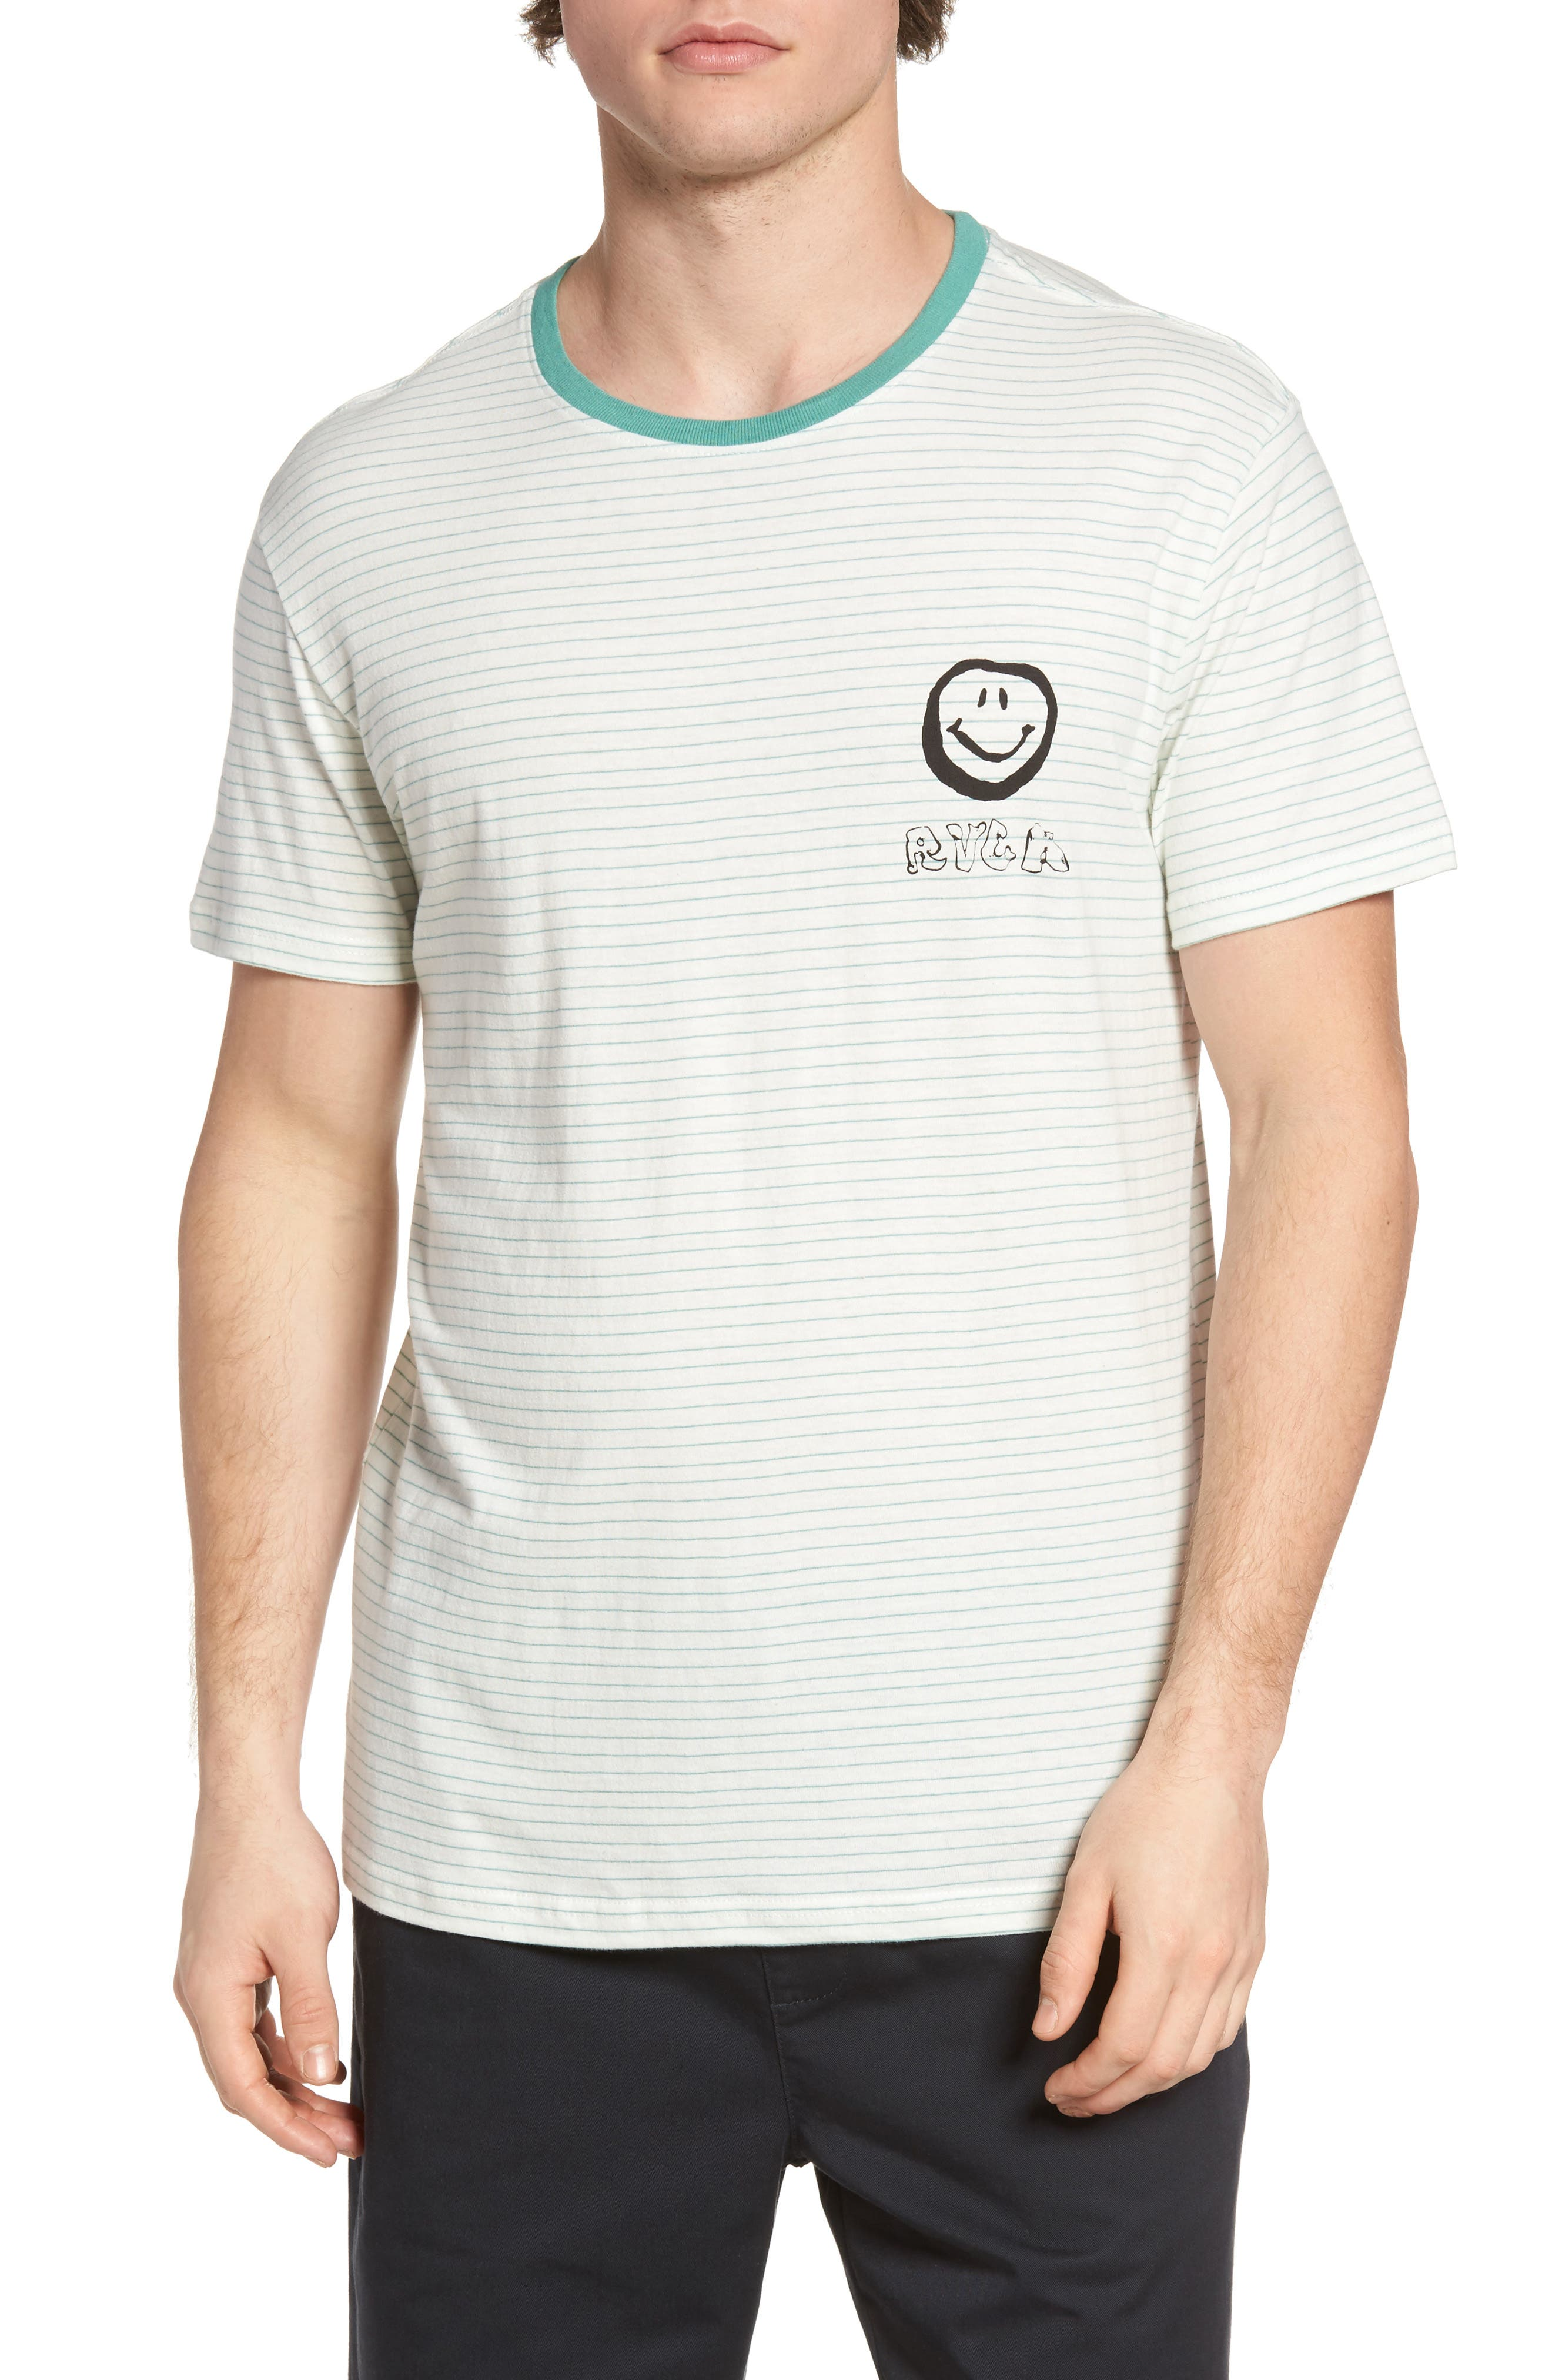 RVCA Nice Day Graphic T-Shirt